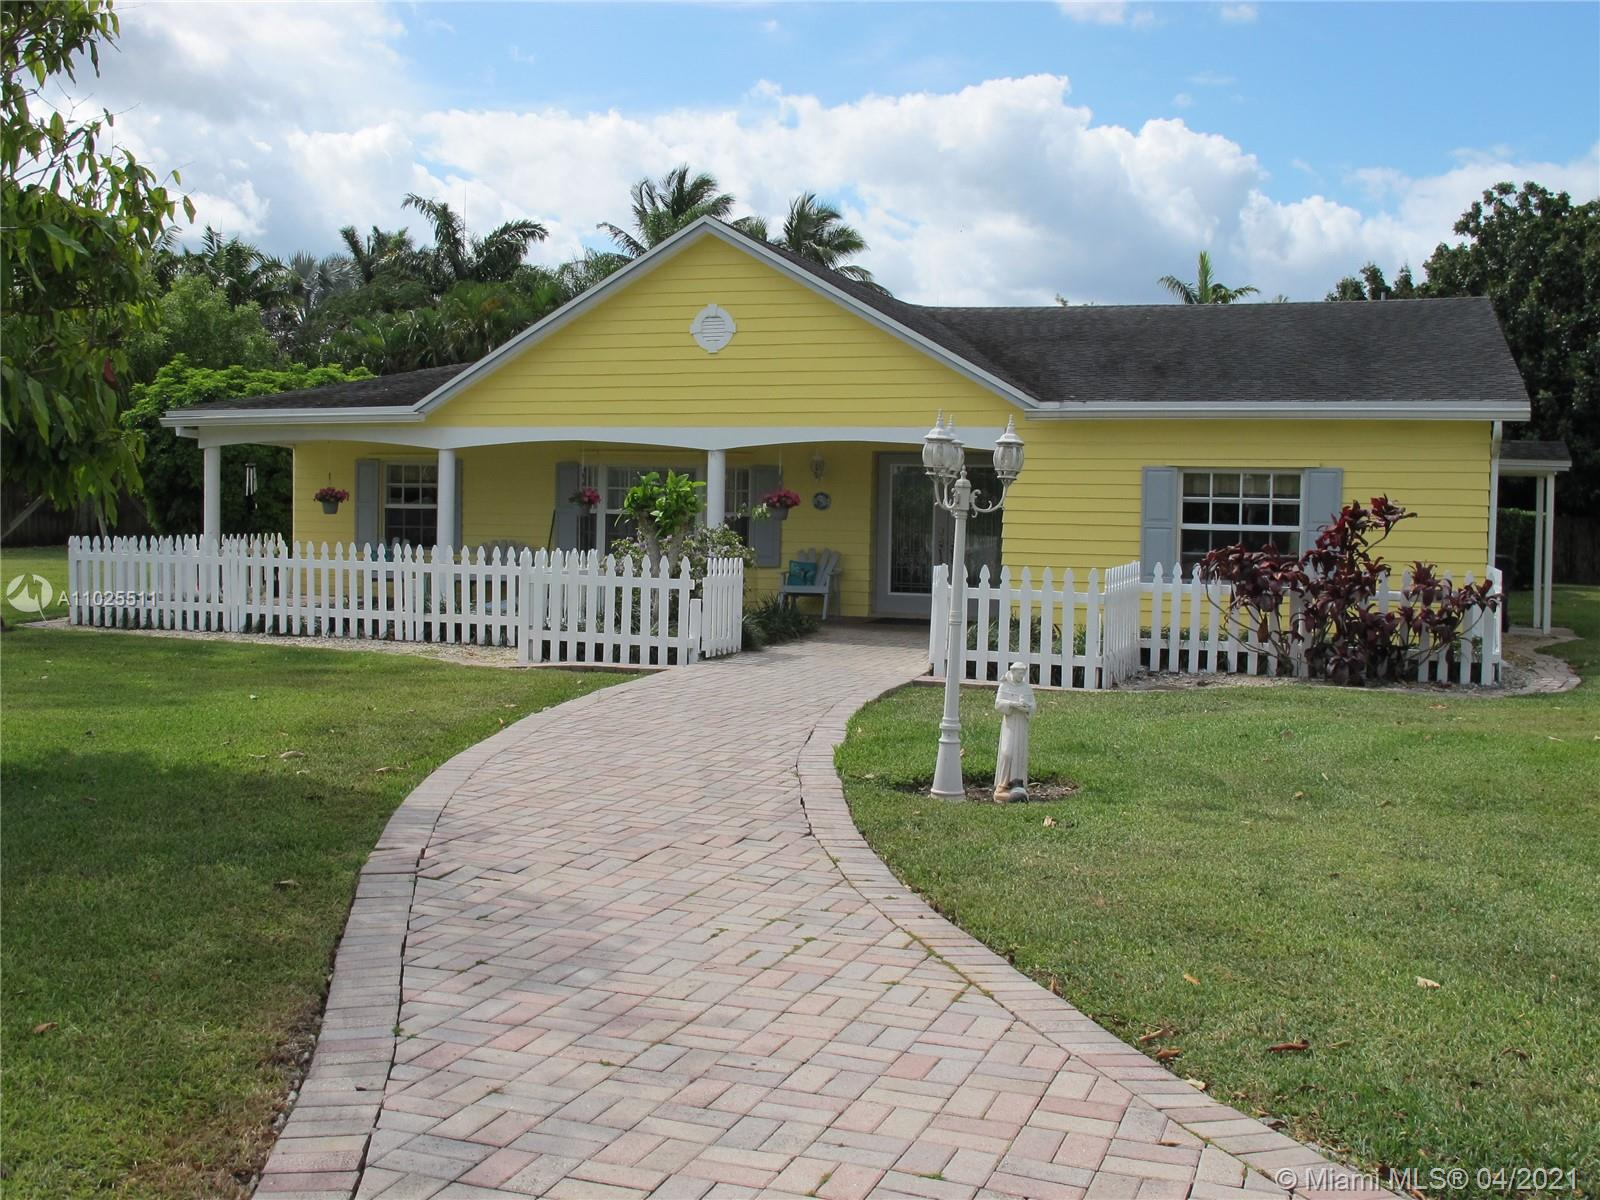 19280 SW 304th St Property Photo - Homestead, FL real estate listing